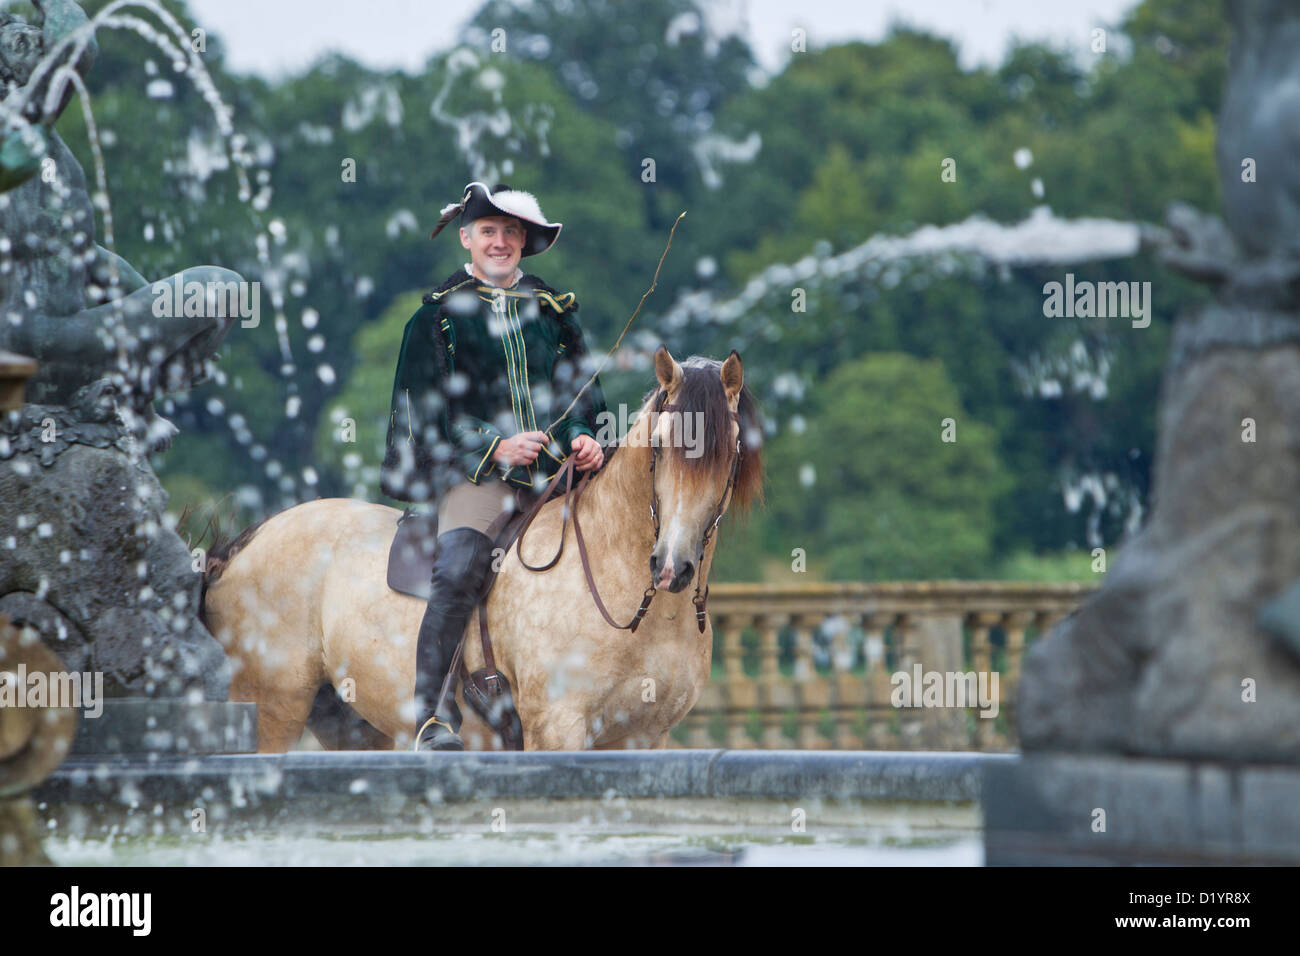 Frederiksborger with rider in historic costume standing behind a fountain in the garden of Frederiksborg PalaceStock Photo